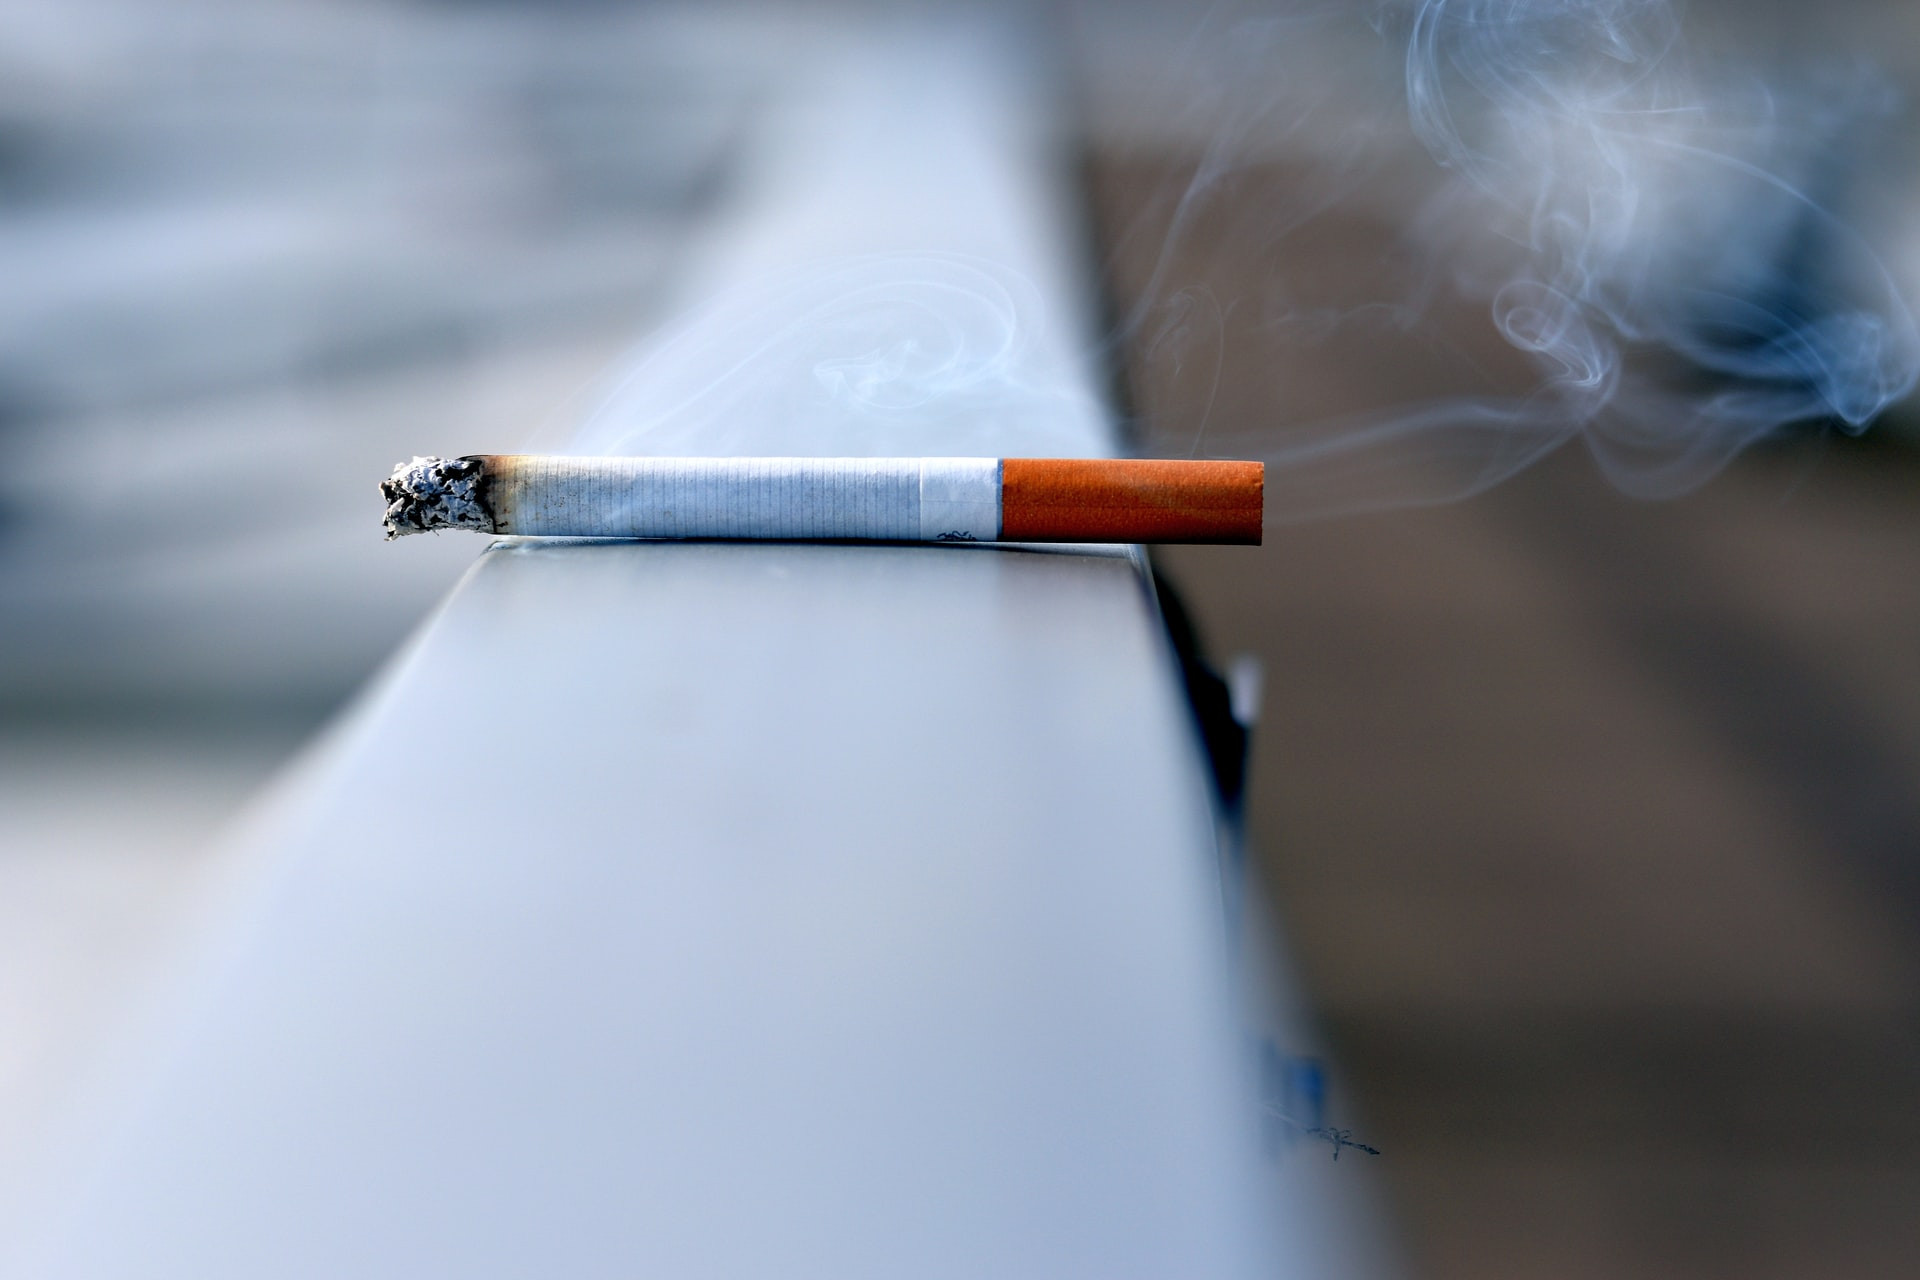 Sale of Loose Cigarettes Banned in Indian State of Maharashtra